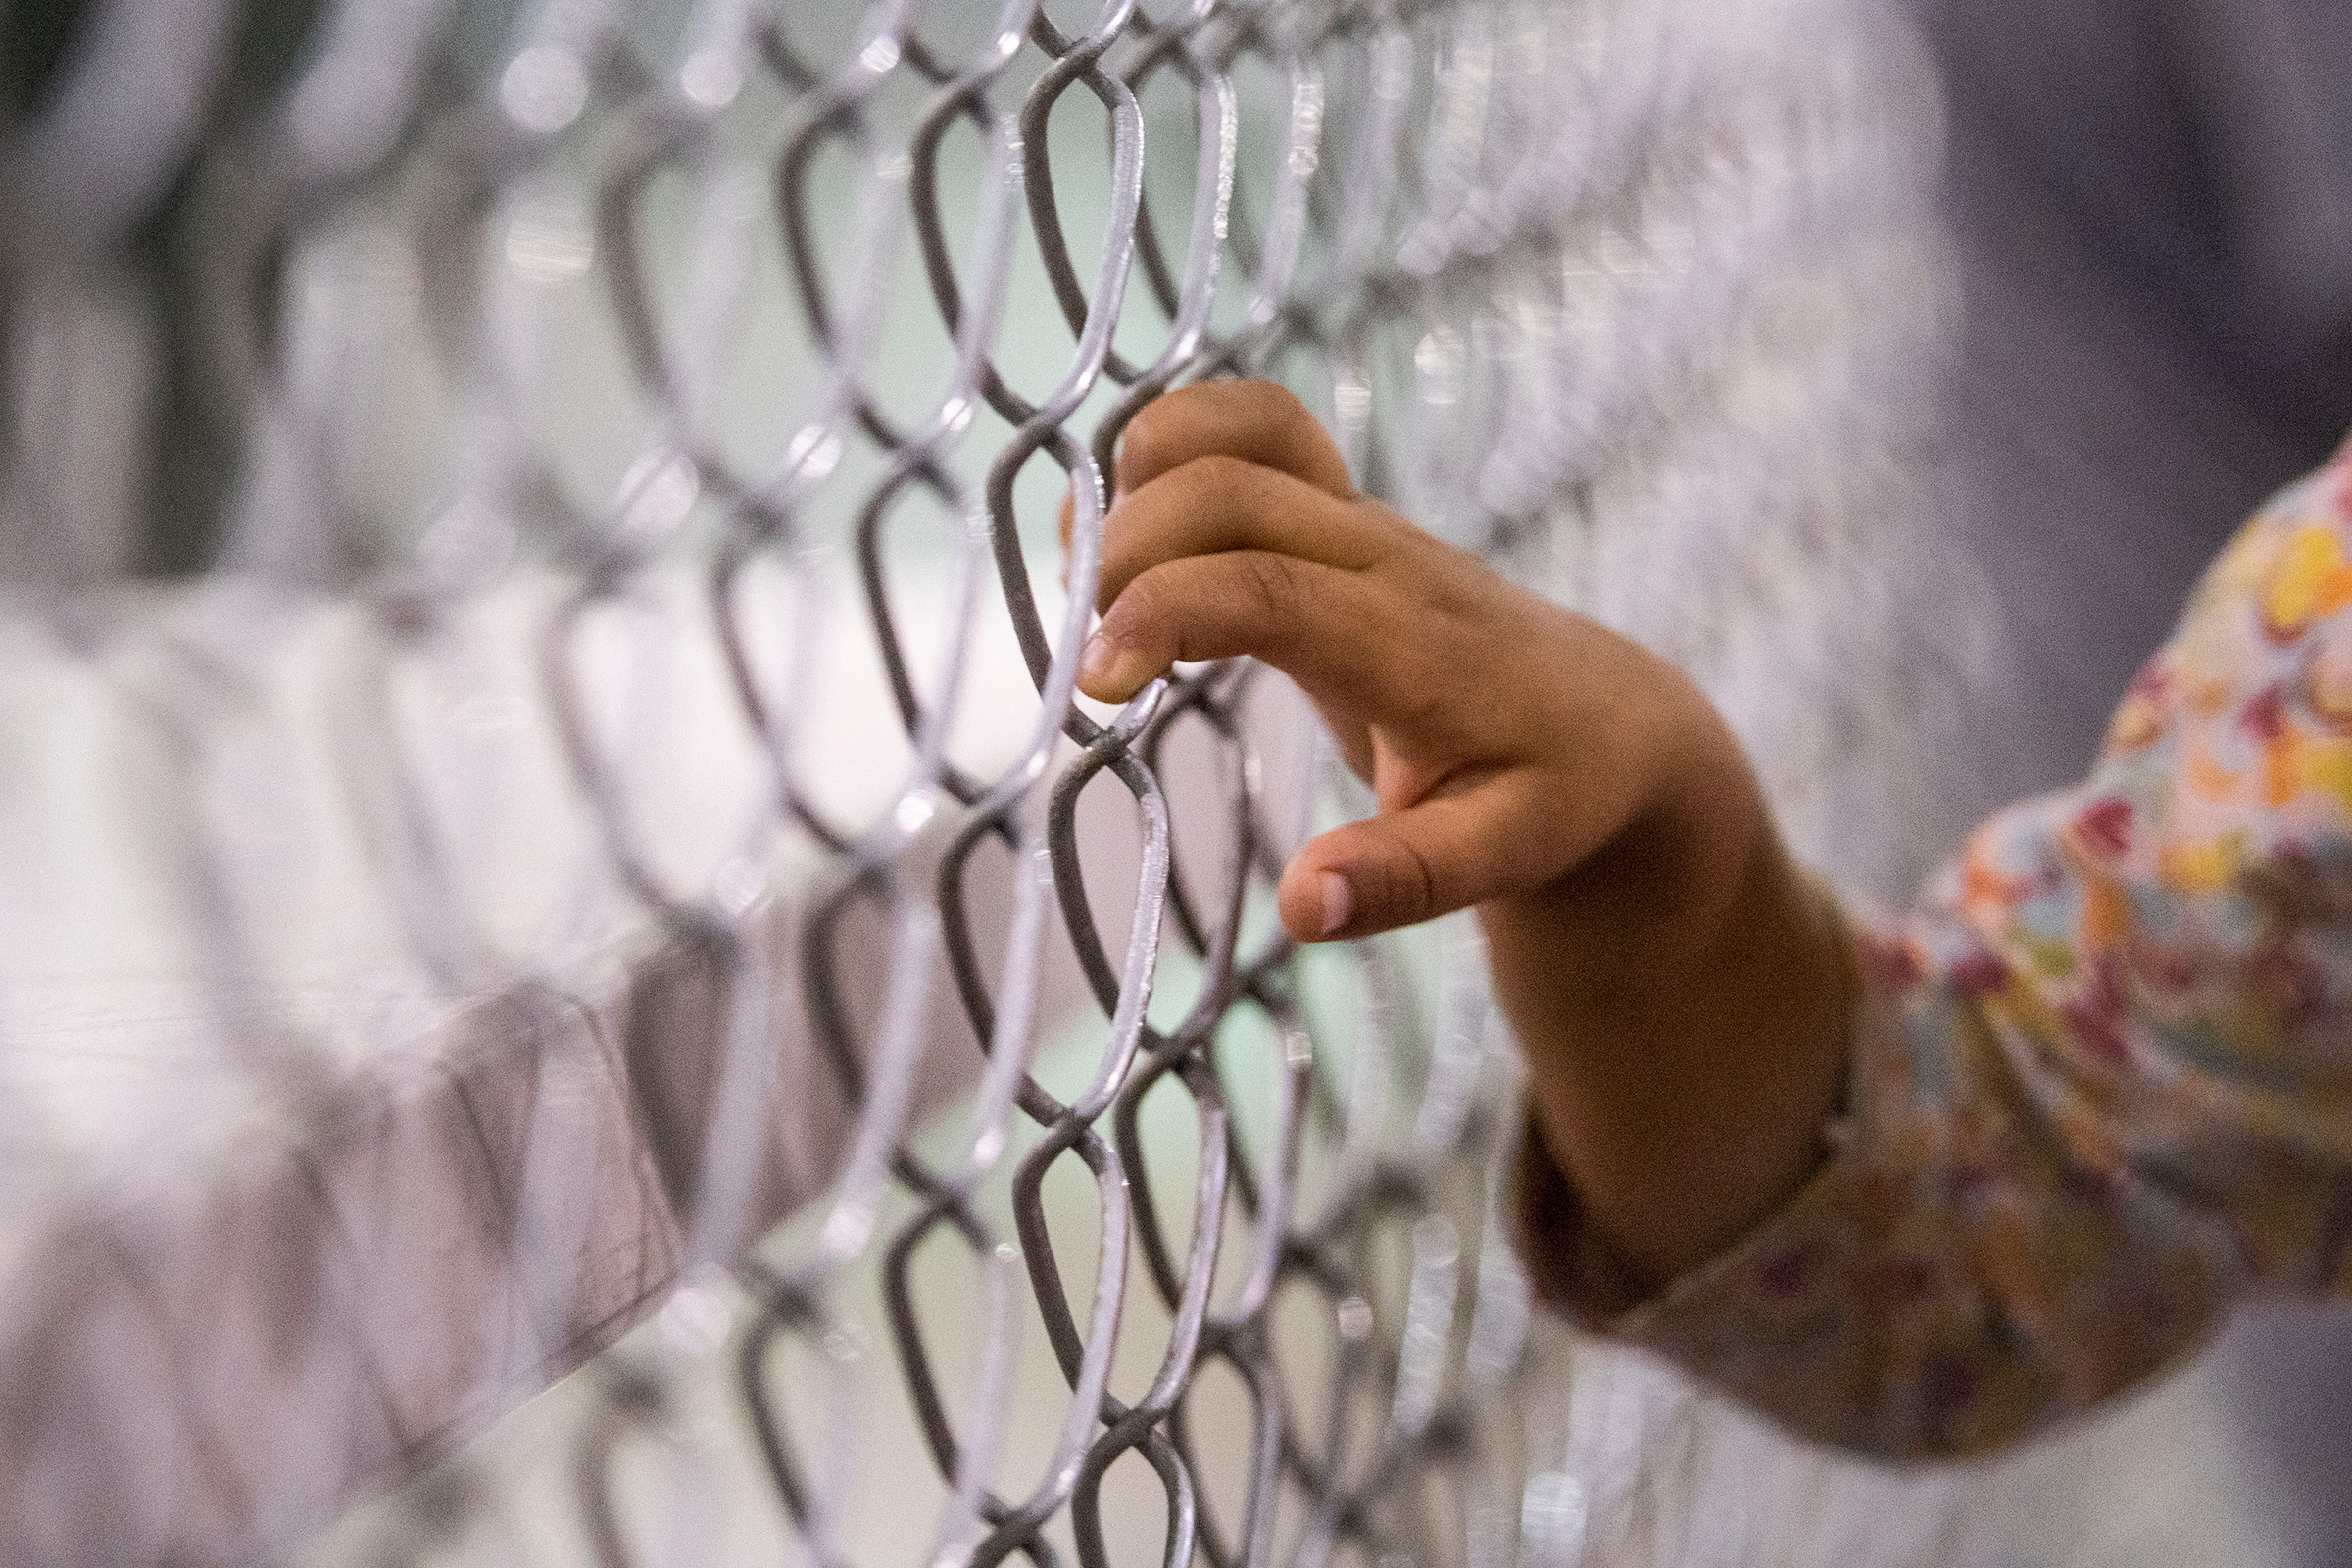 A child holds onto a fence in the U.S. Border Patrol Central Processing Center in McAllen, Texas, on Aug. 12, 2019.